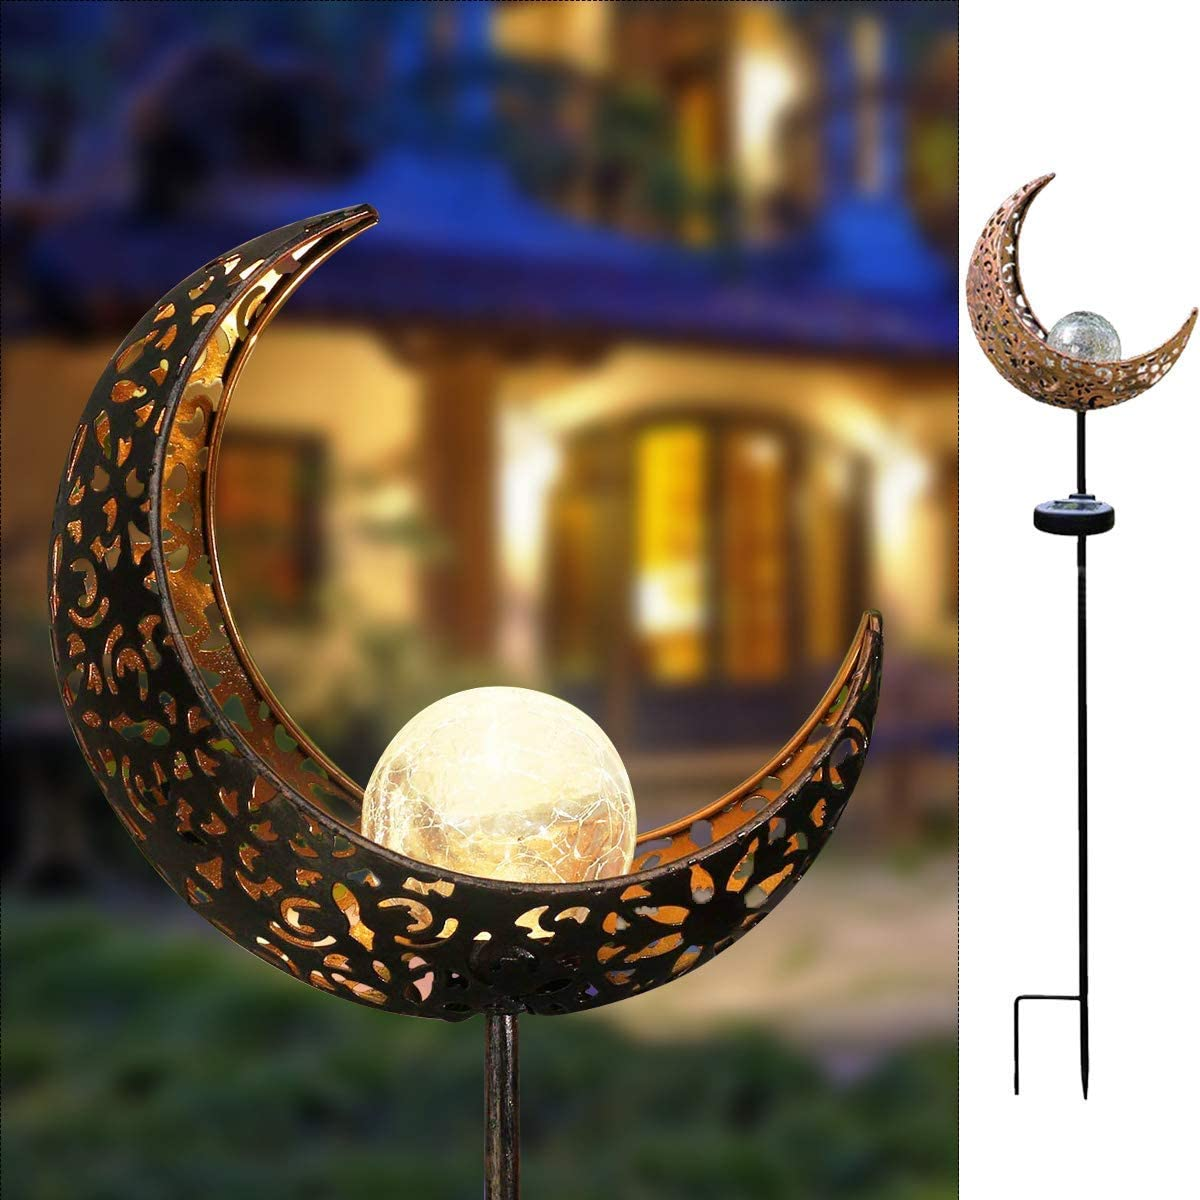 HDNICE Garden Solar Light Outdoor Decorative, Moon Crackle Glass Globe Stake Metal Lights,Waterproof Warm White LED for Pathway, Lawn, Patio, Yard